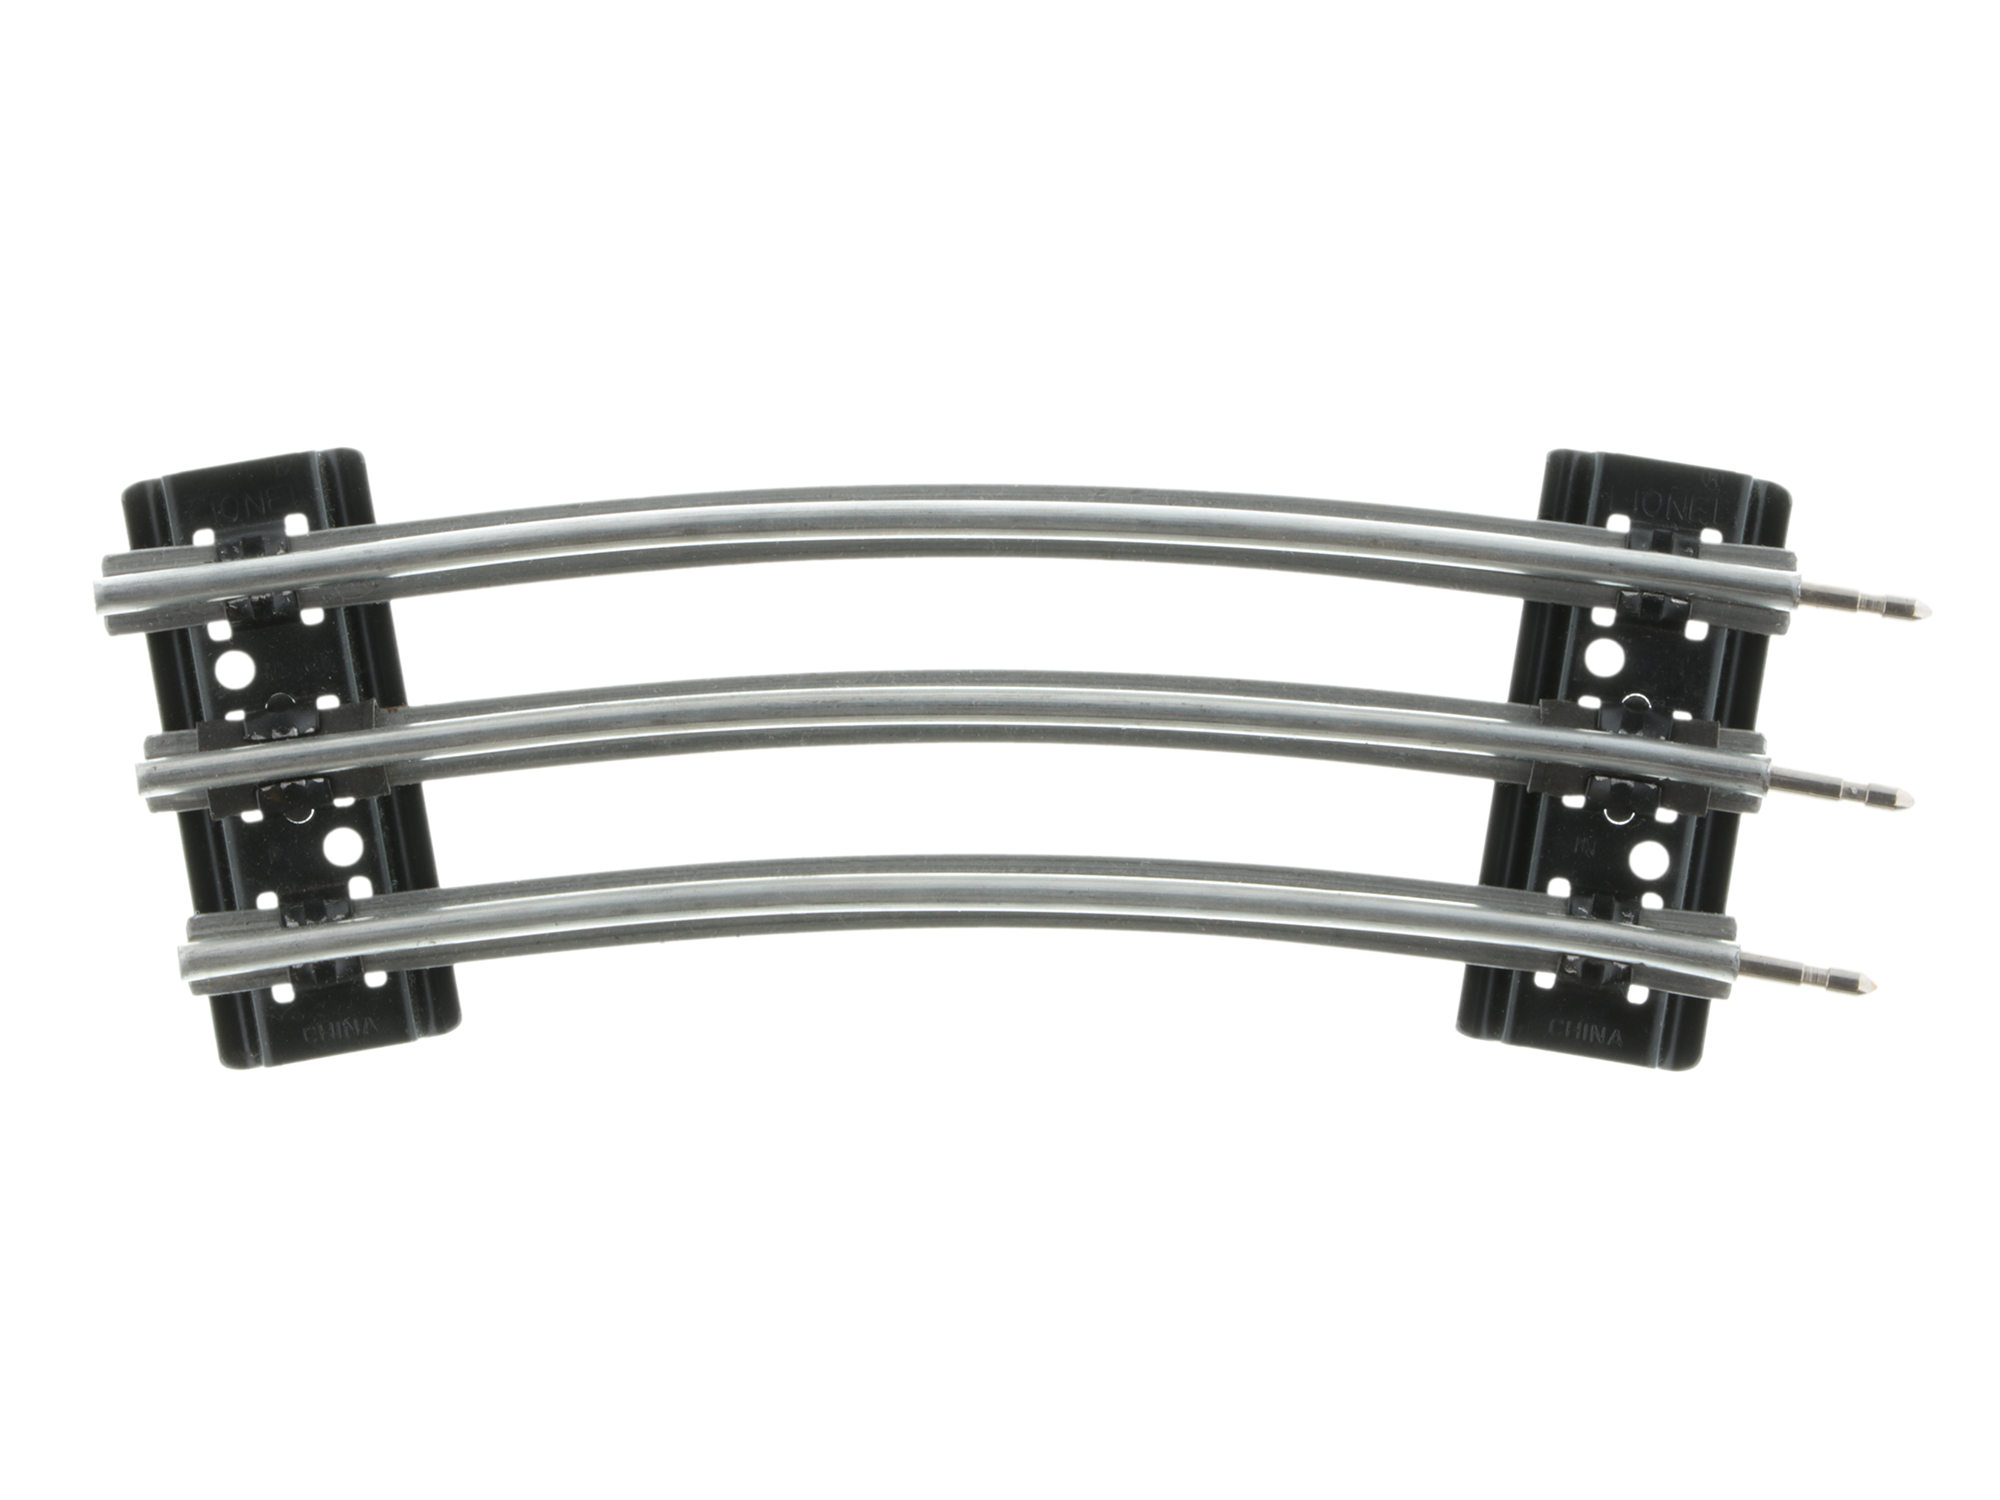 6-65504 1/2 CURVE TRACK SECTION (0 GAUGE)